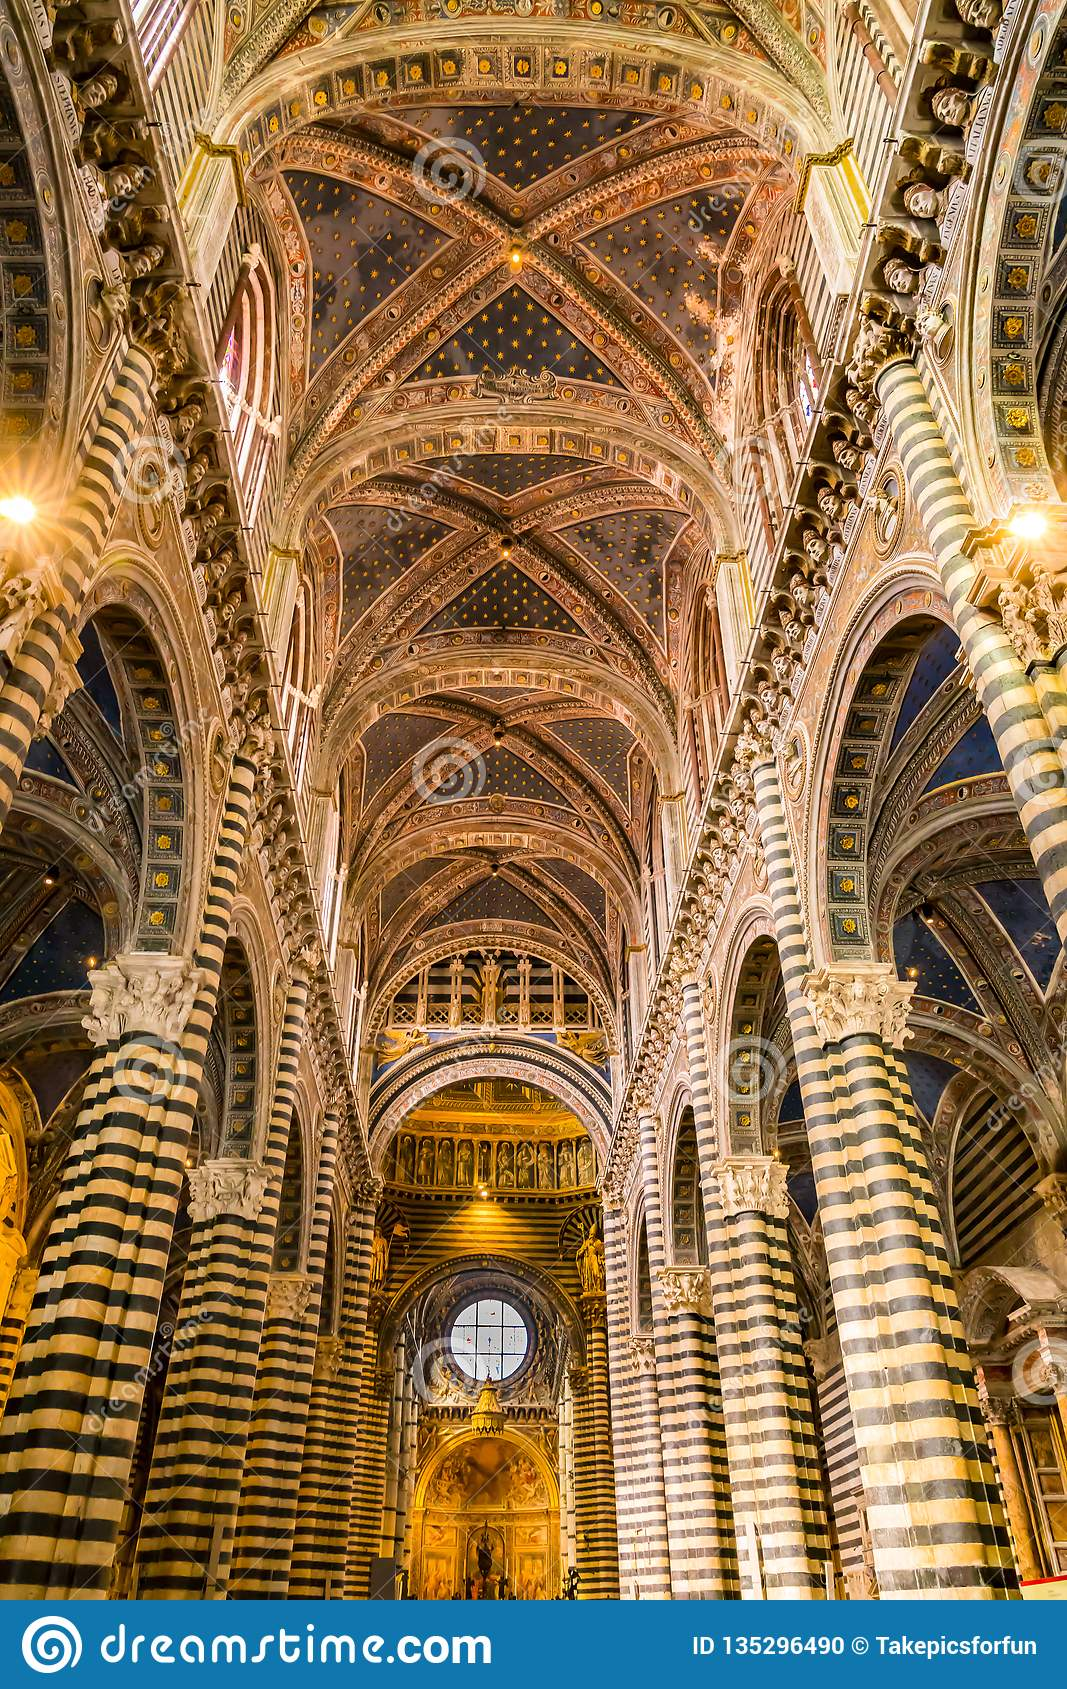 Interior architecture detail of the Siena Cathedral